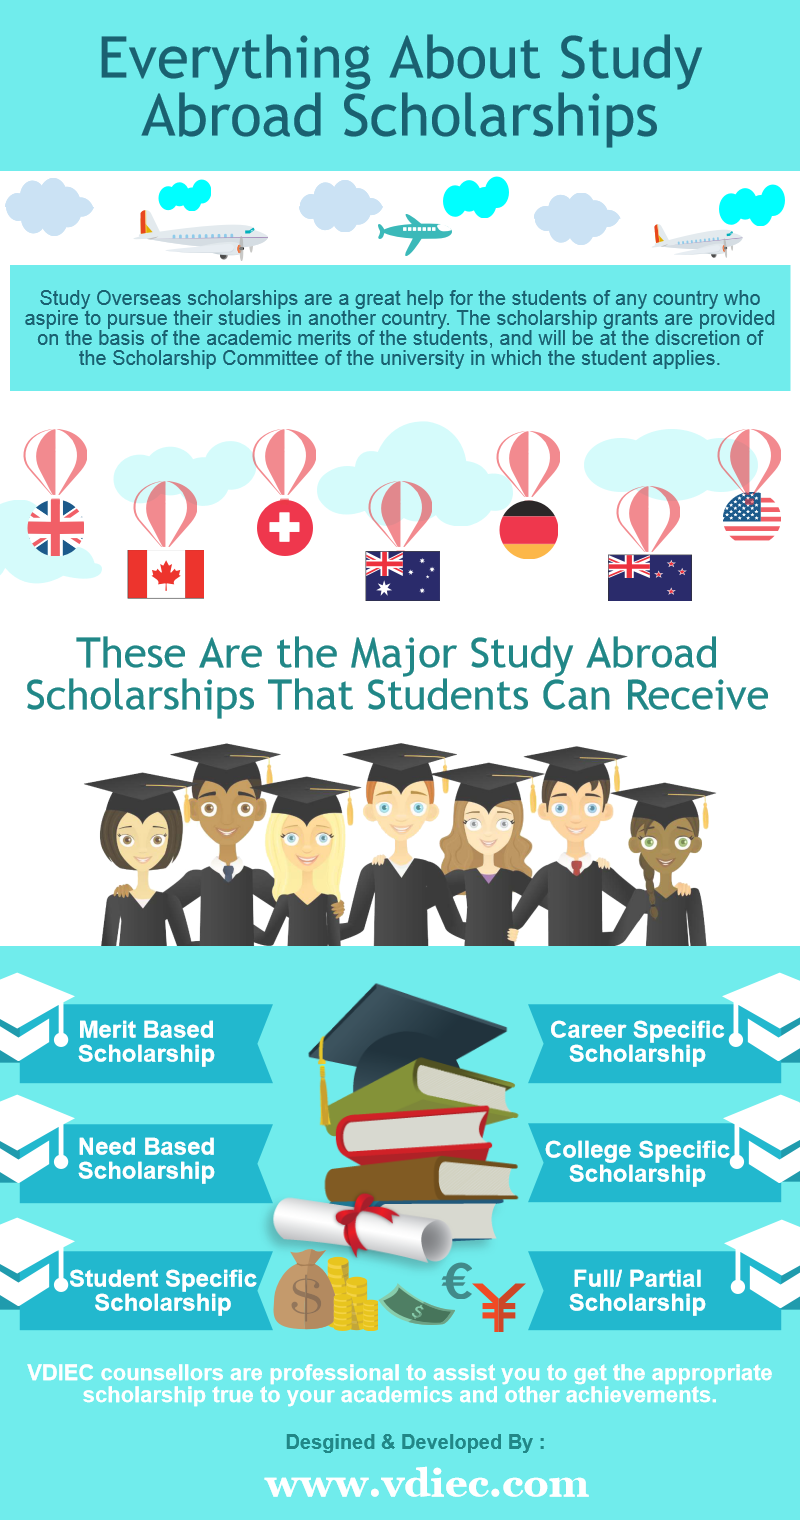 cc4379ec83c19f7b77f2cddc9d312ed2 - How Can I Get A Full Scholarship To Study Abroad